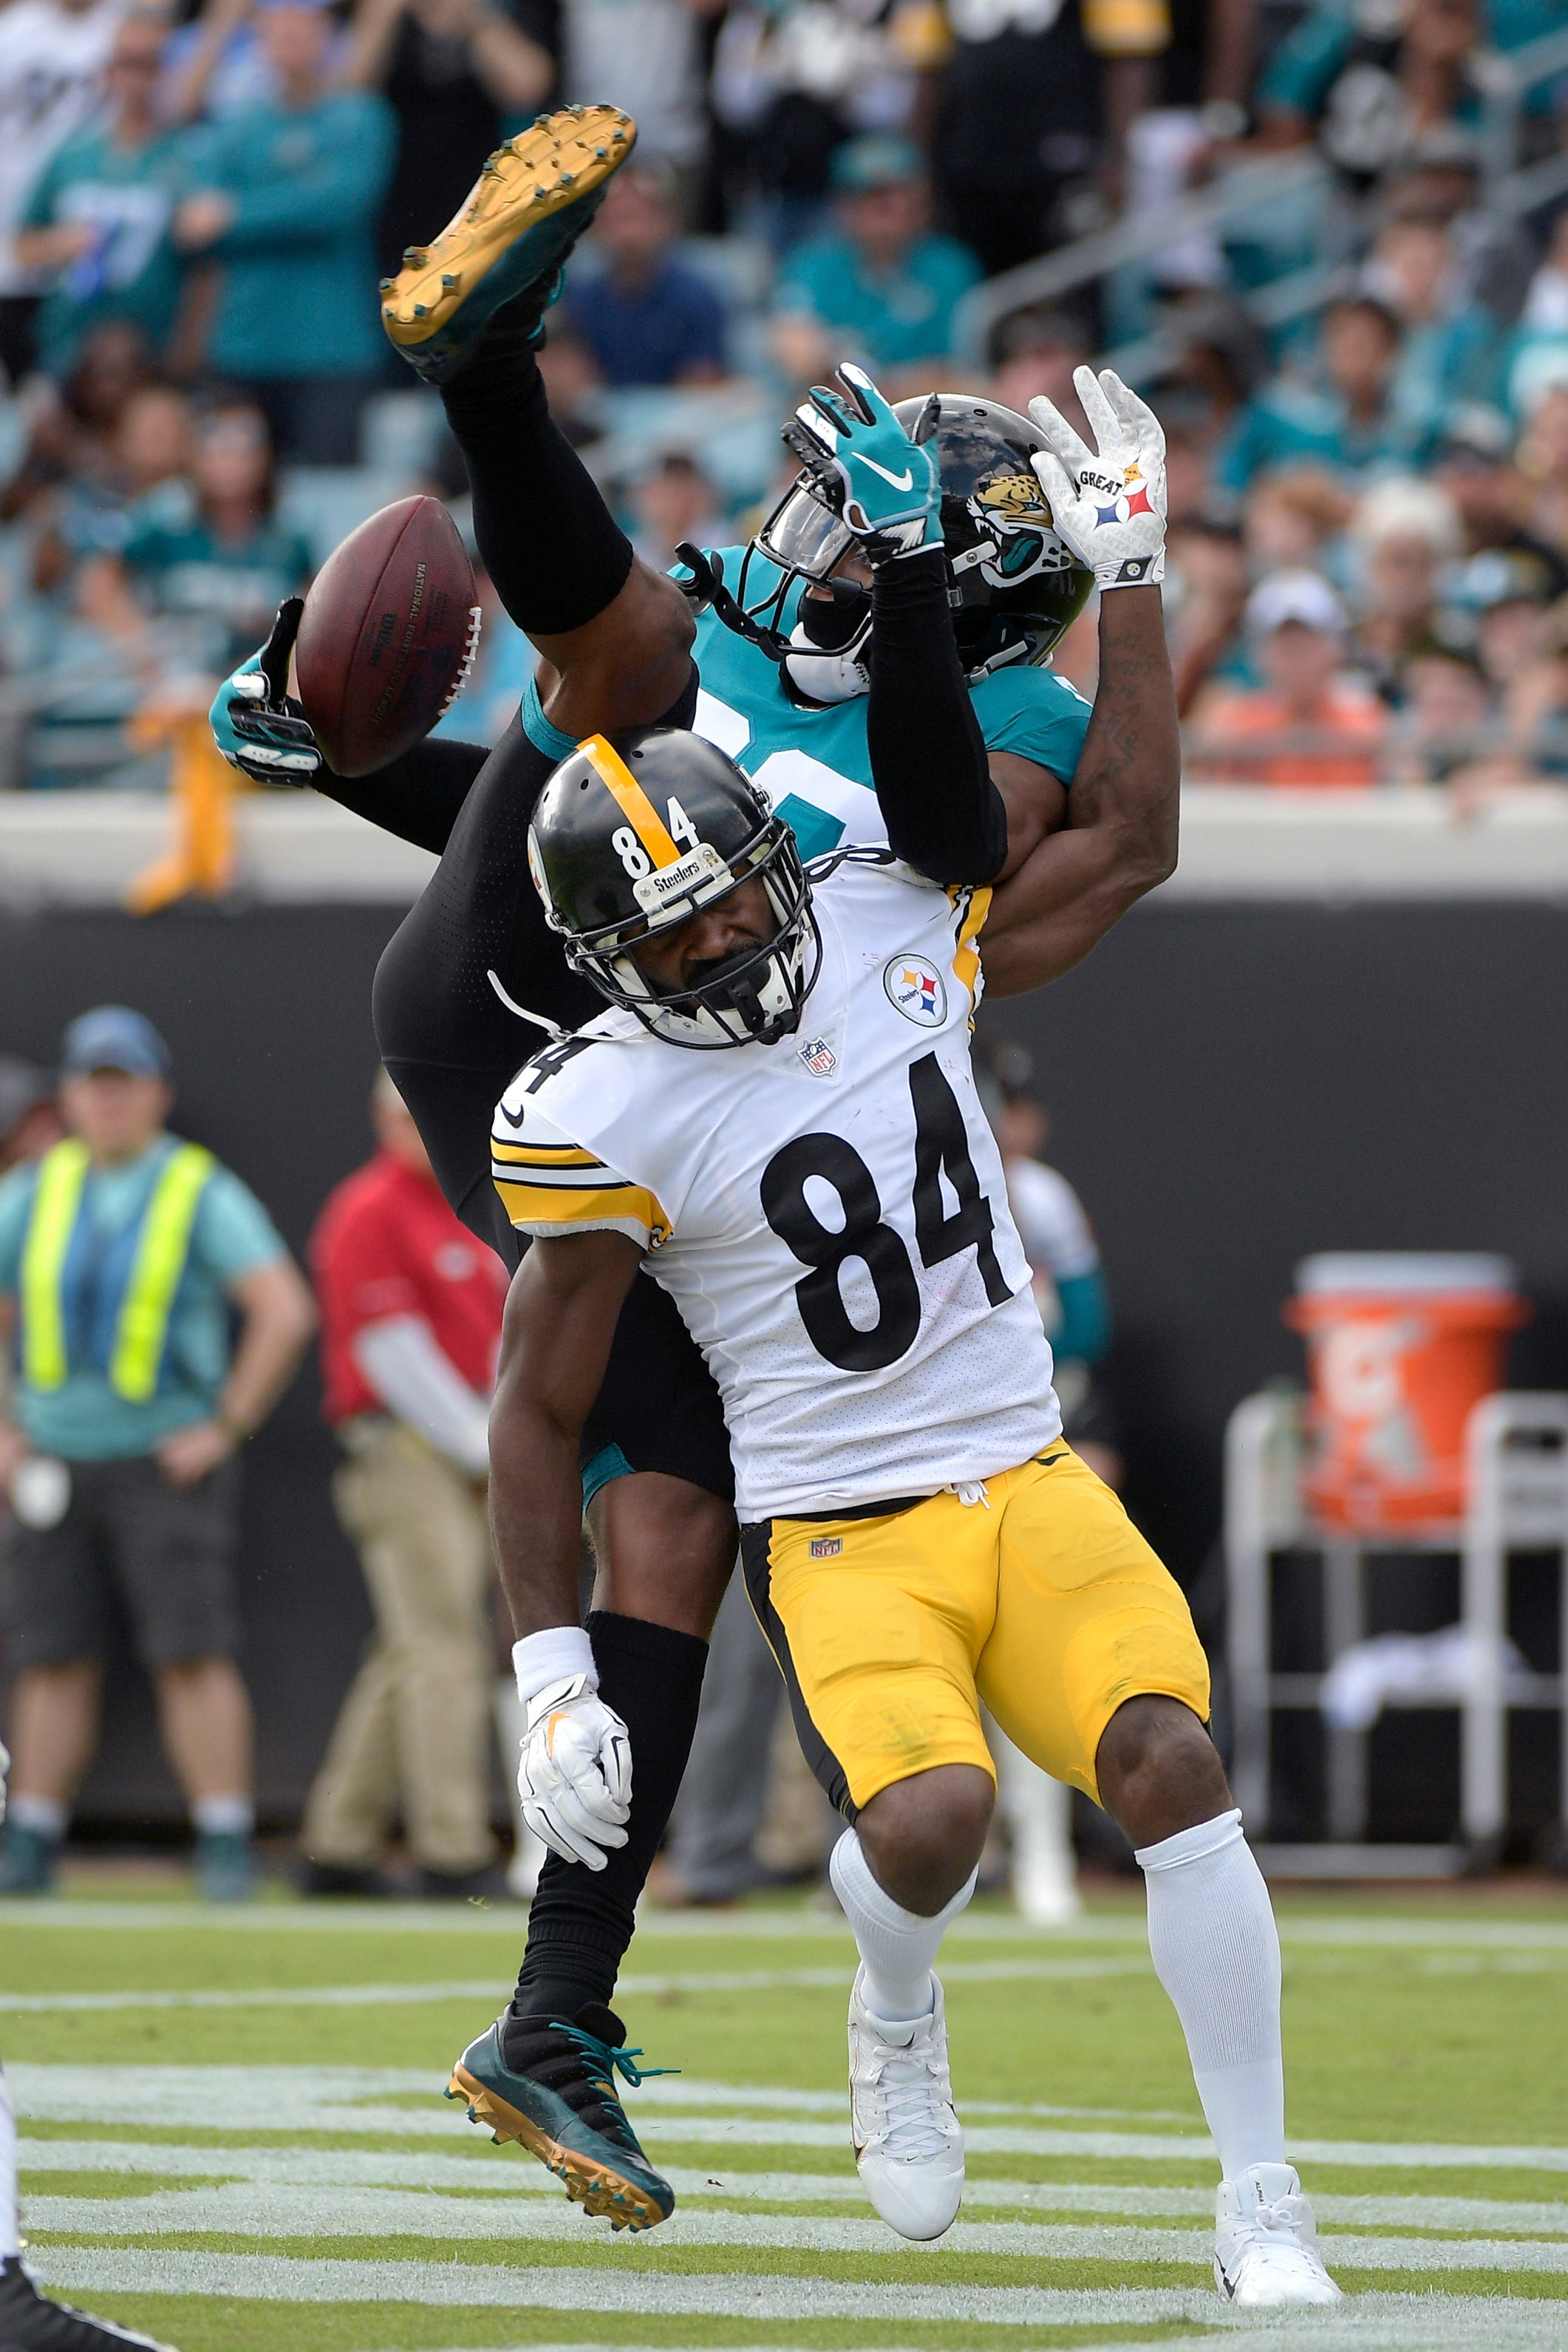 Jags' Ramsey plans to play in Pro Bowl despite bruised knee